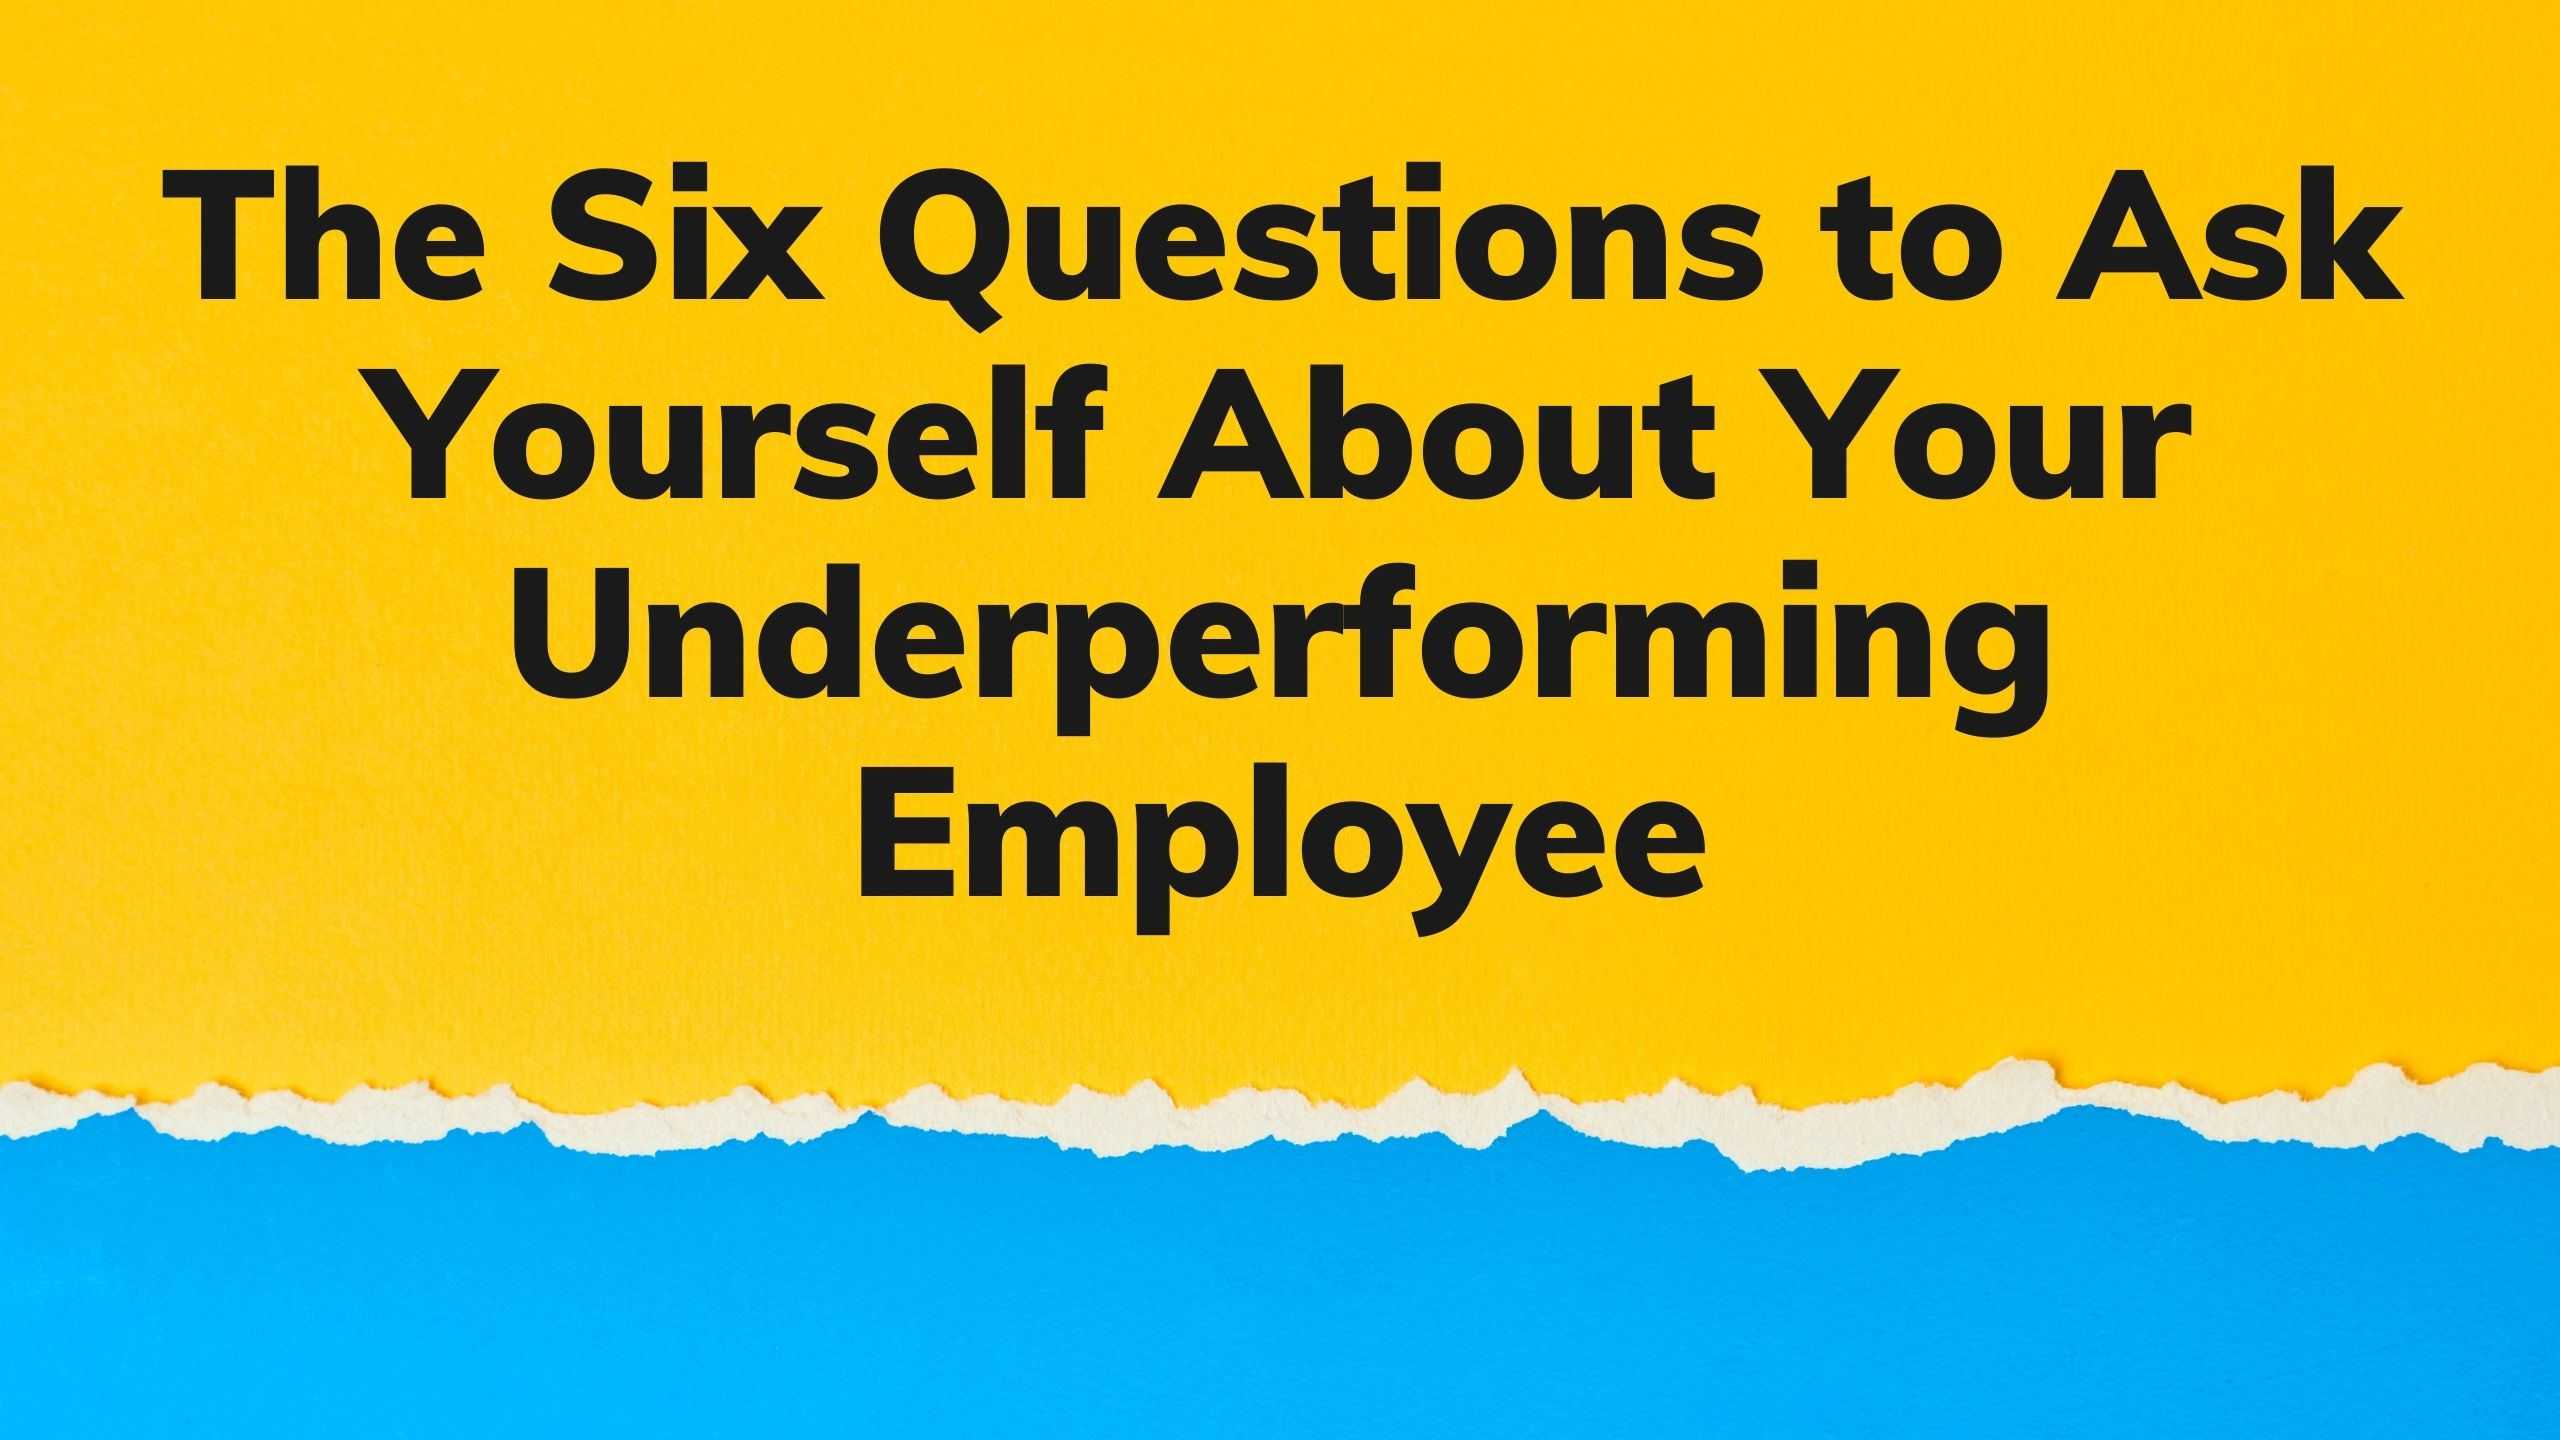 The Six Questions to Ask Yourself About Your Underperforming Employee